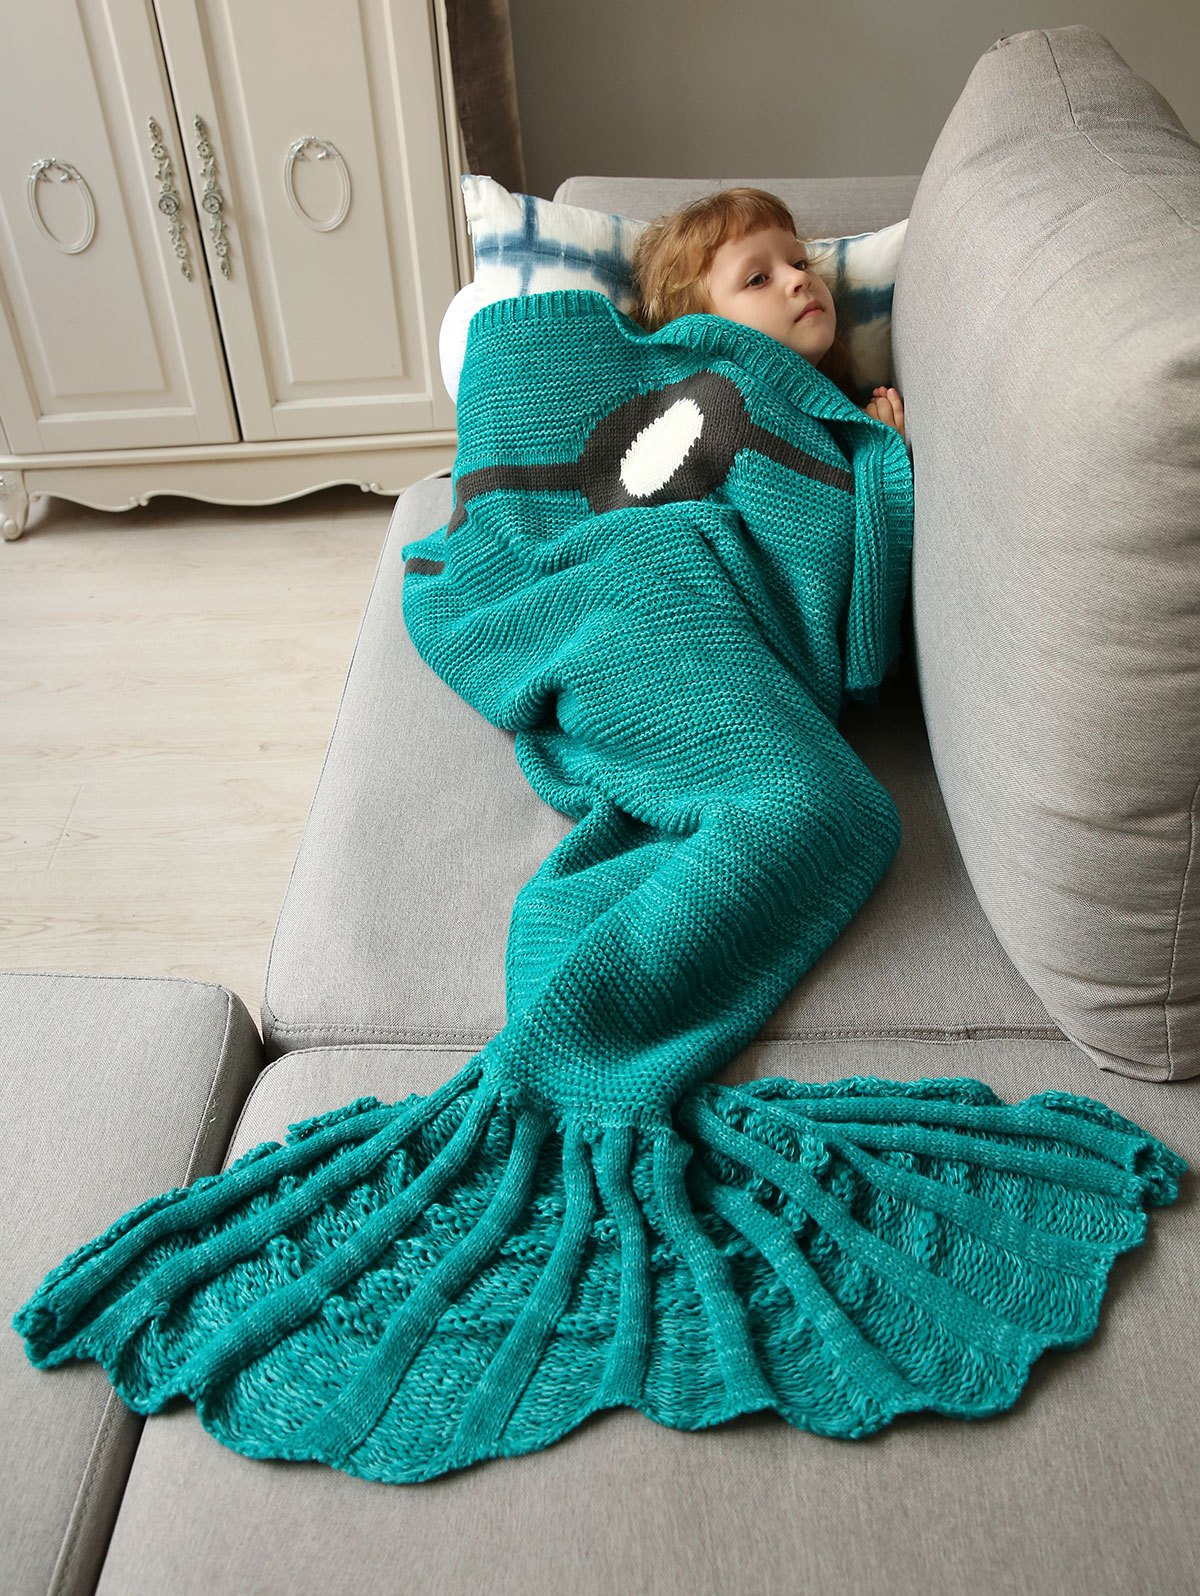 Handmade Knitted Bed Sofa Wrap Mermaid Blanket fuguimao electric blanket pure white manta electrica 150x70cm electric heating blanket for bed 220v heated blanket body warmer